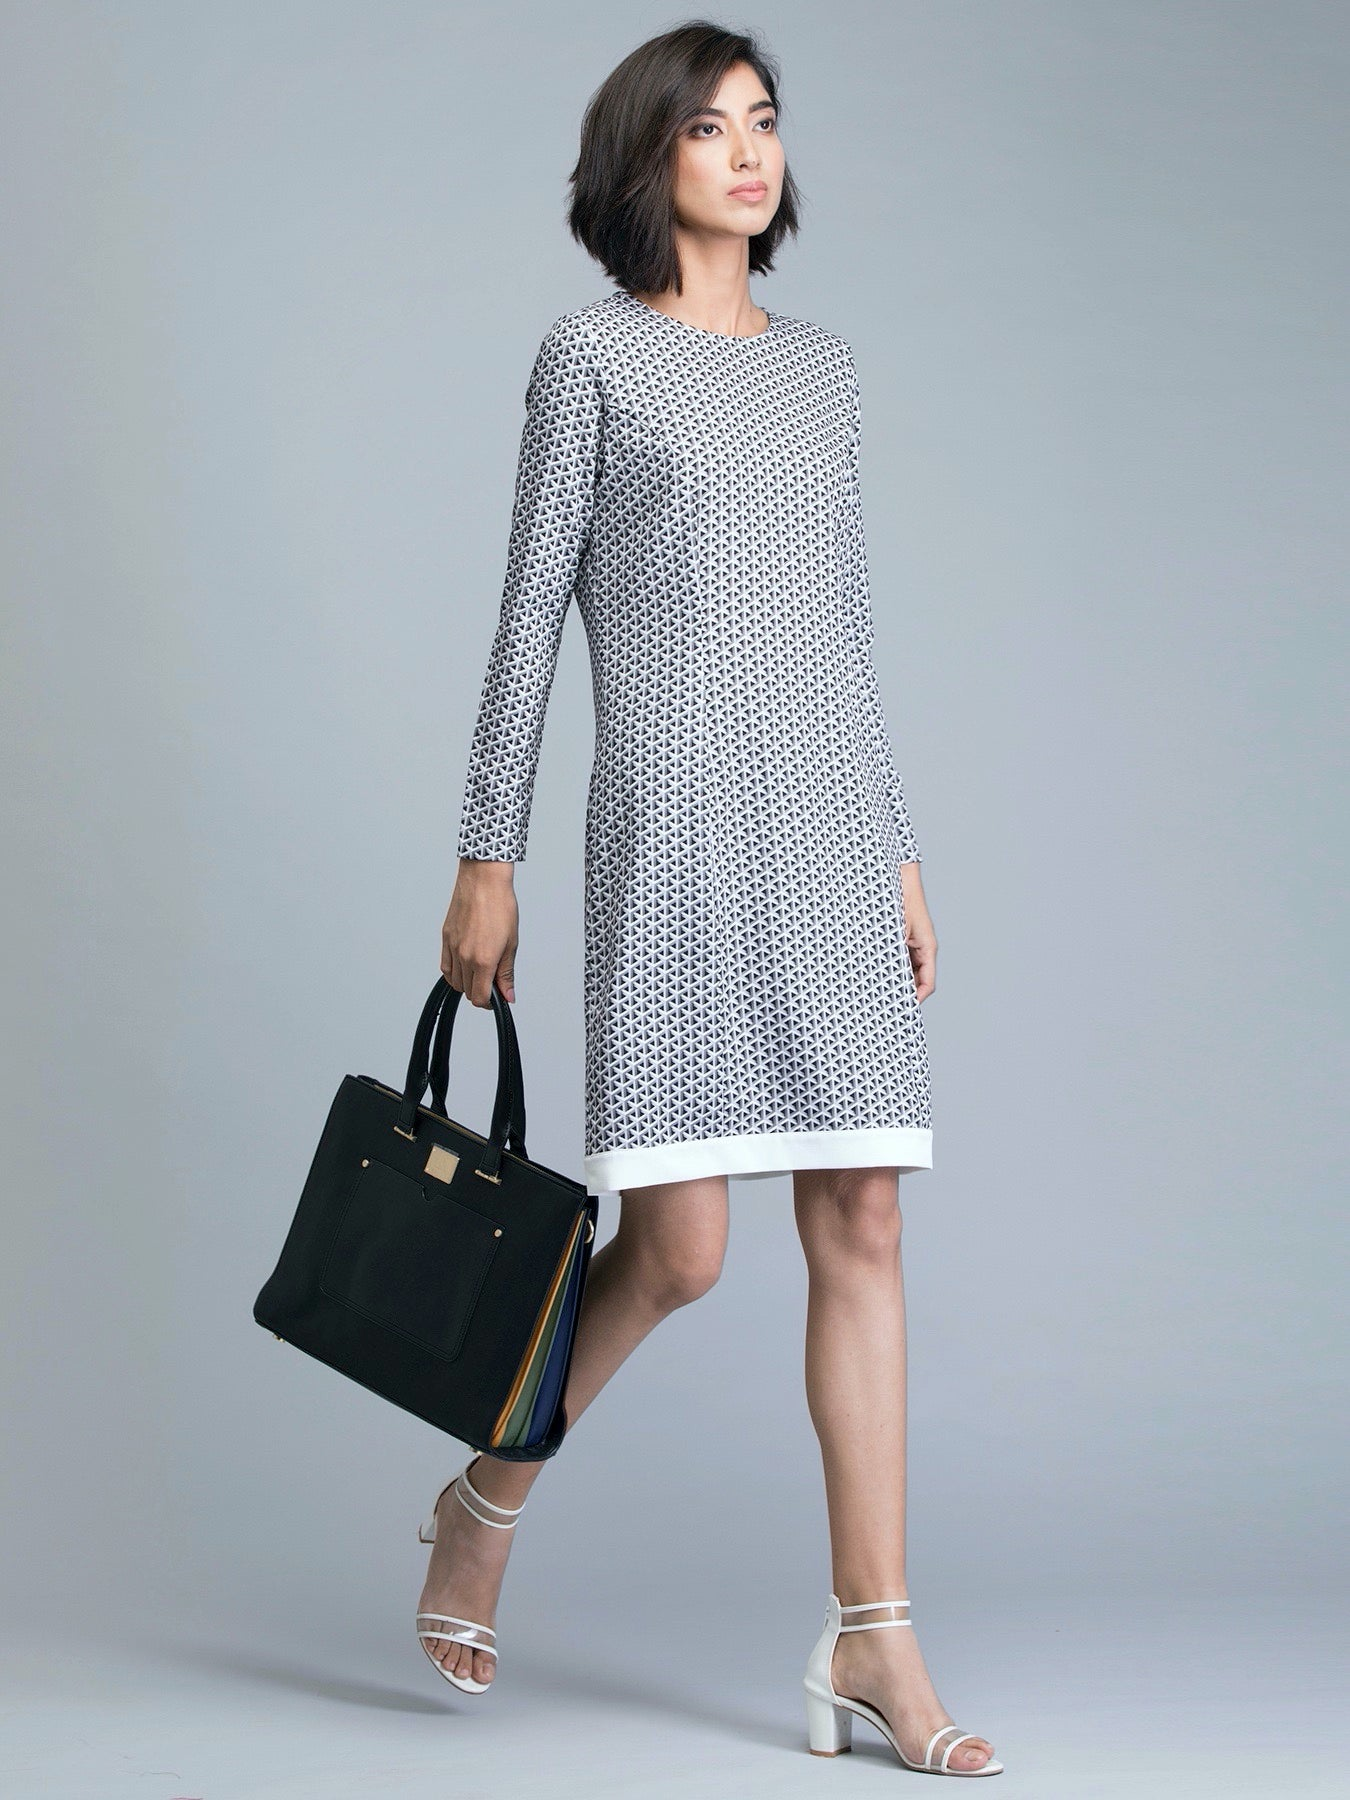 Round Neck Geometric Print Shift Dress - Grey